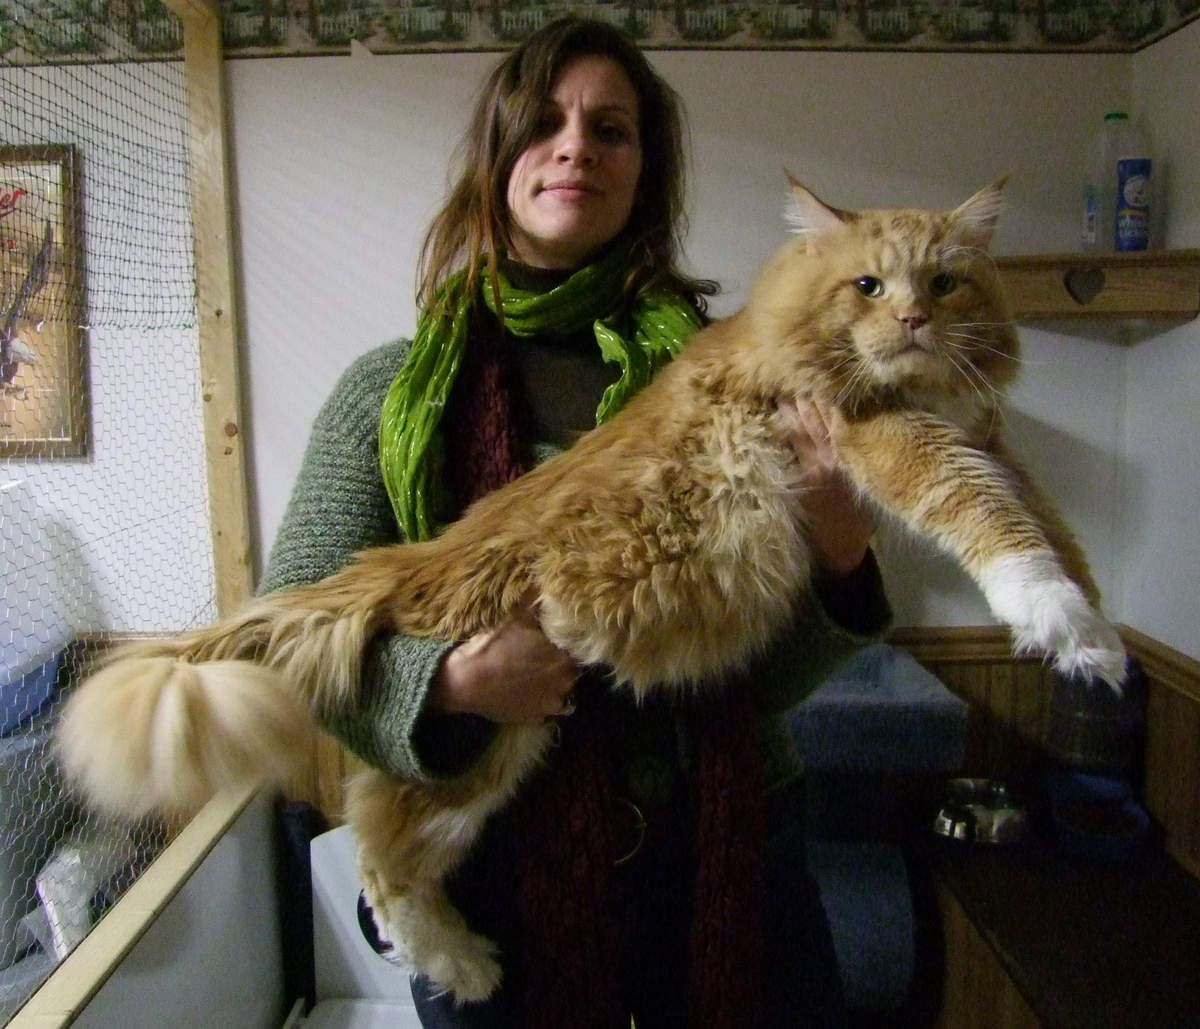 Giant cat Pickles